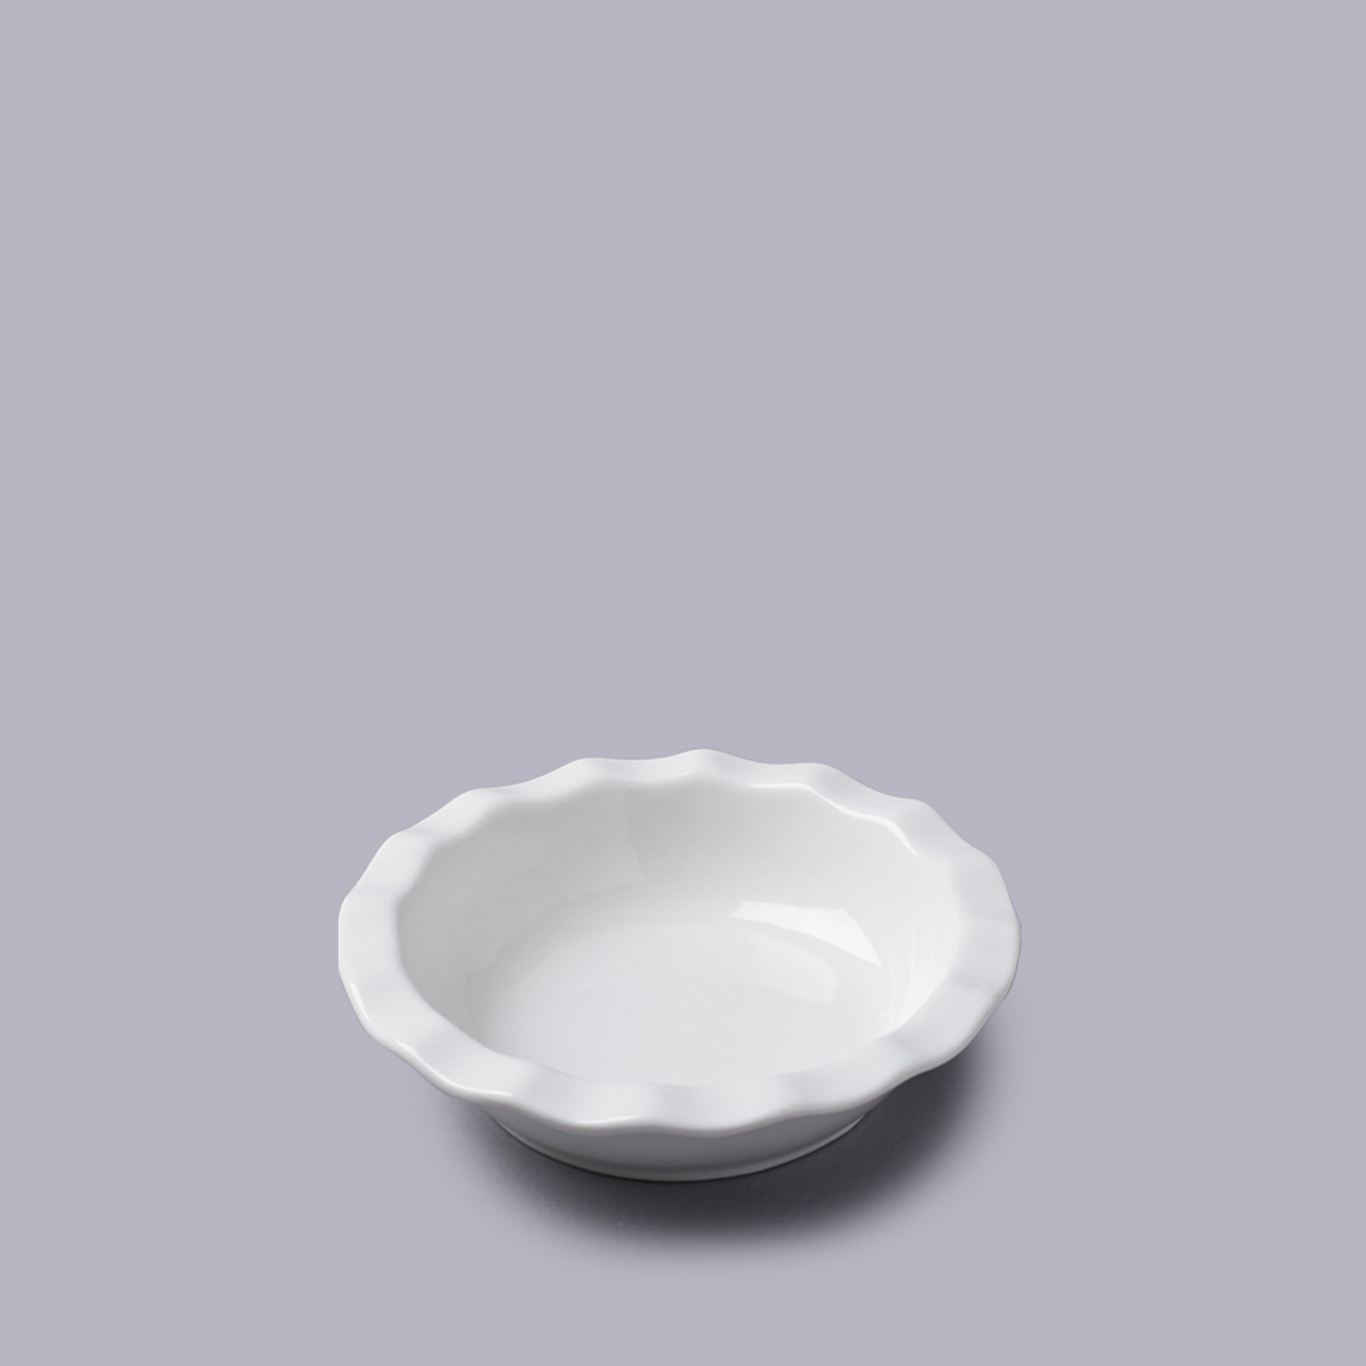 Image of Round Pie Dish with Crinkle Crust Rim 16cm